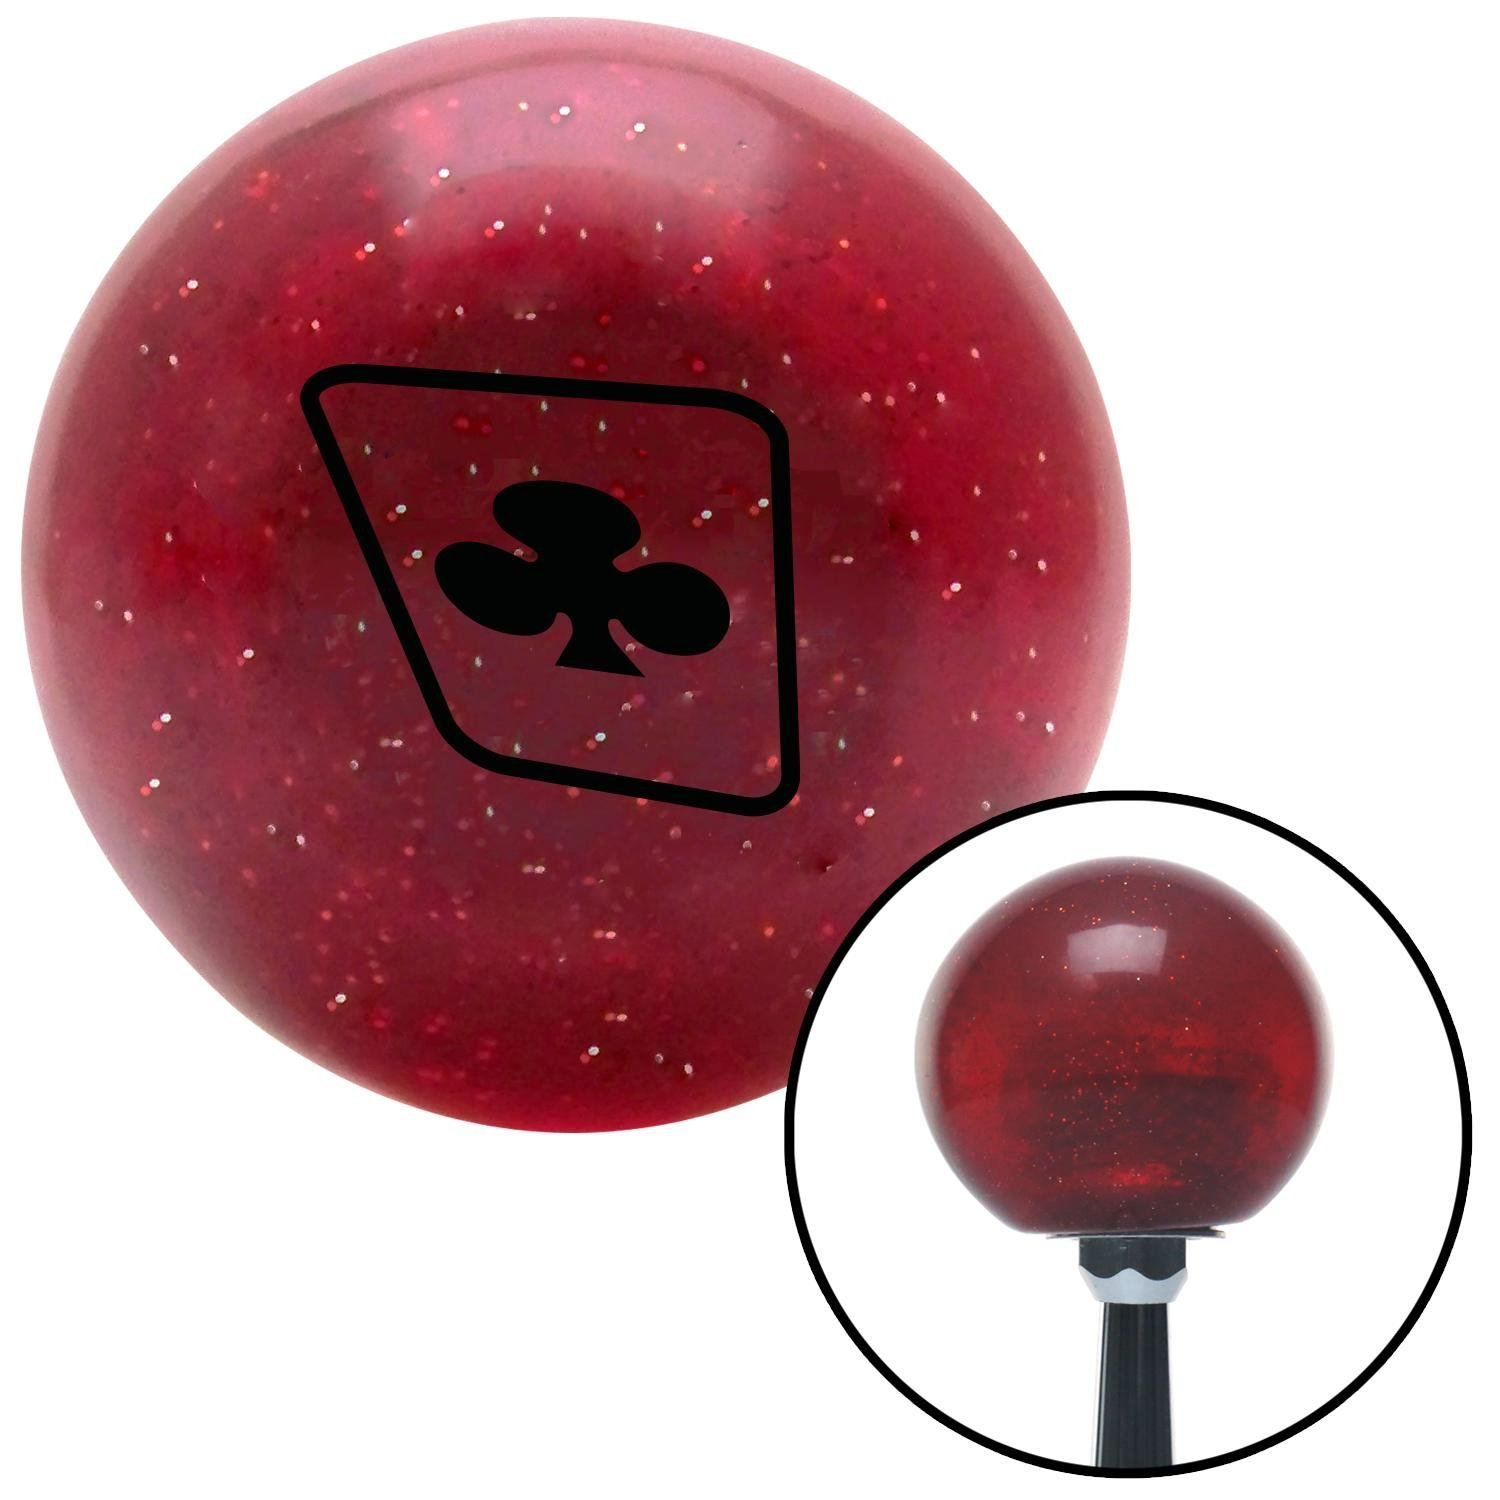 Black Clubs on a Card American Shifter 48242 Red Metal Flake Shift Knob with 16mm x 1.5 Insert